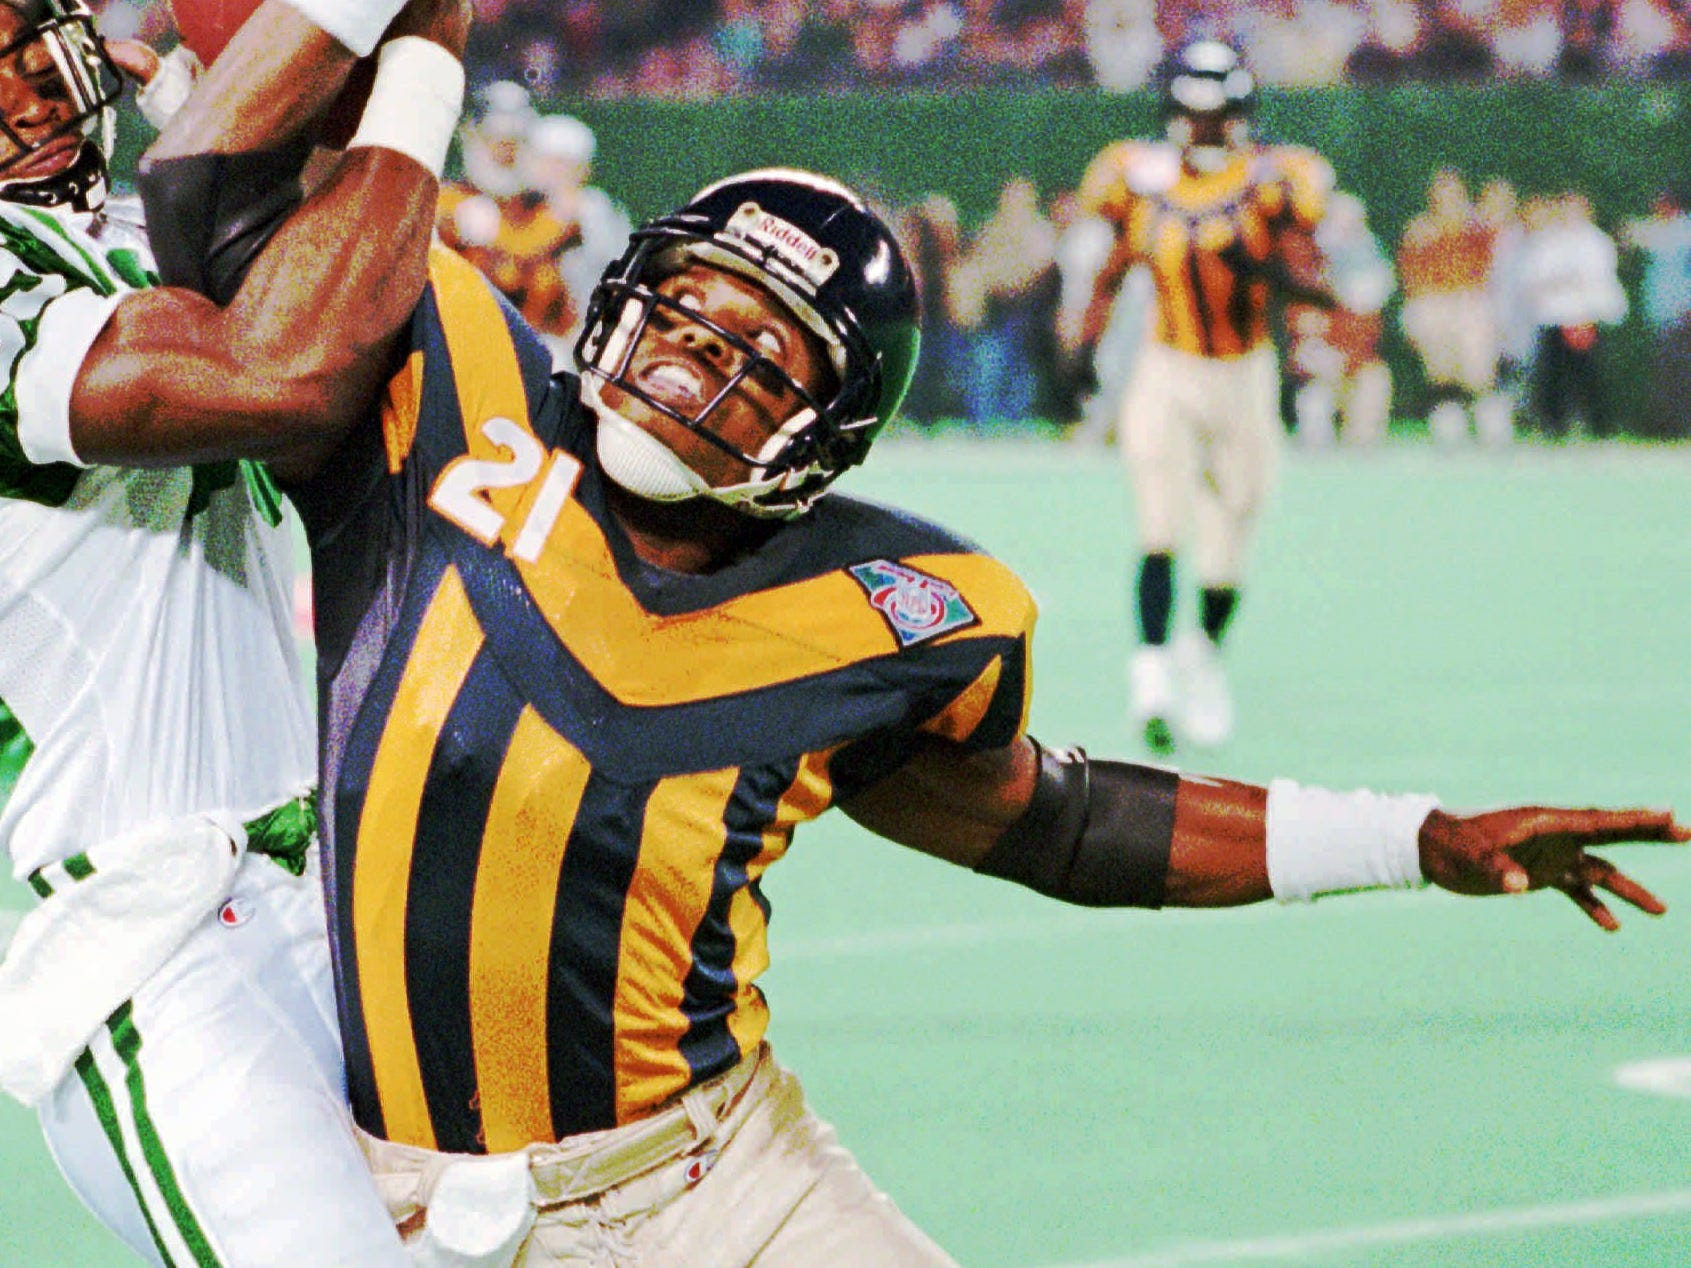 Prison stripes were the new black in 1994 for these Bears 1924 throwback uniforms.